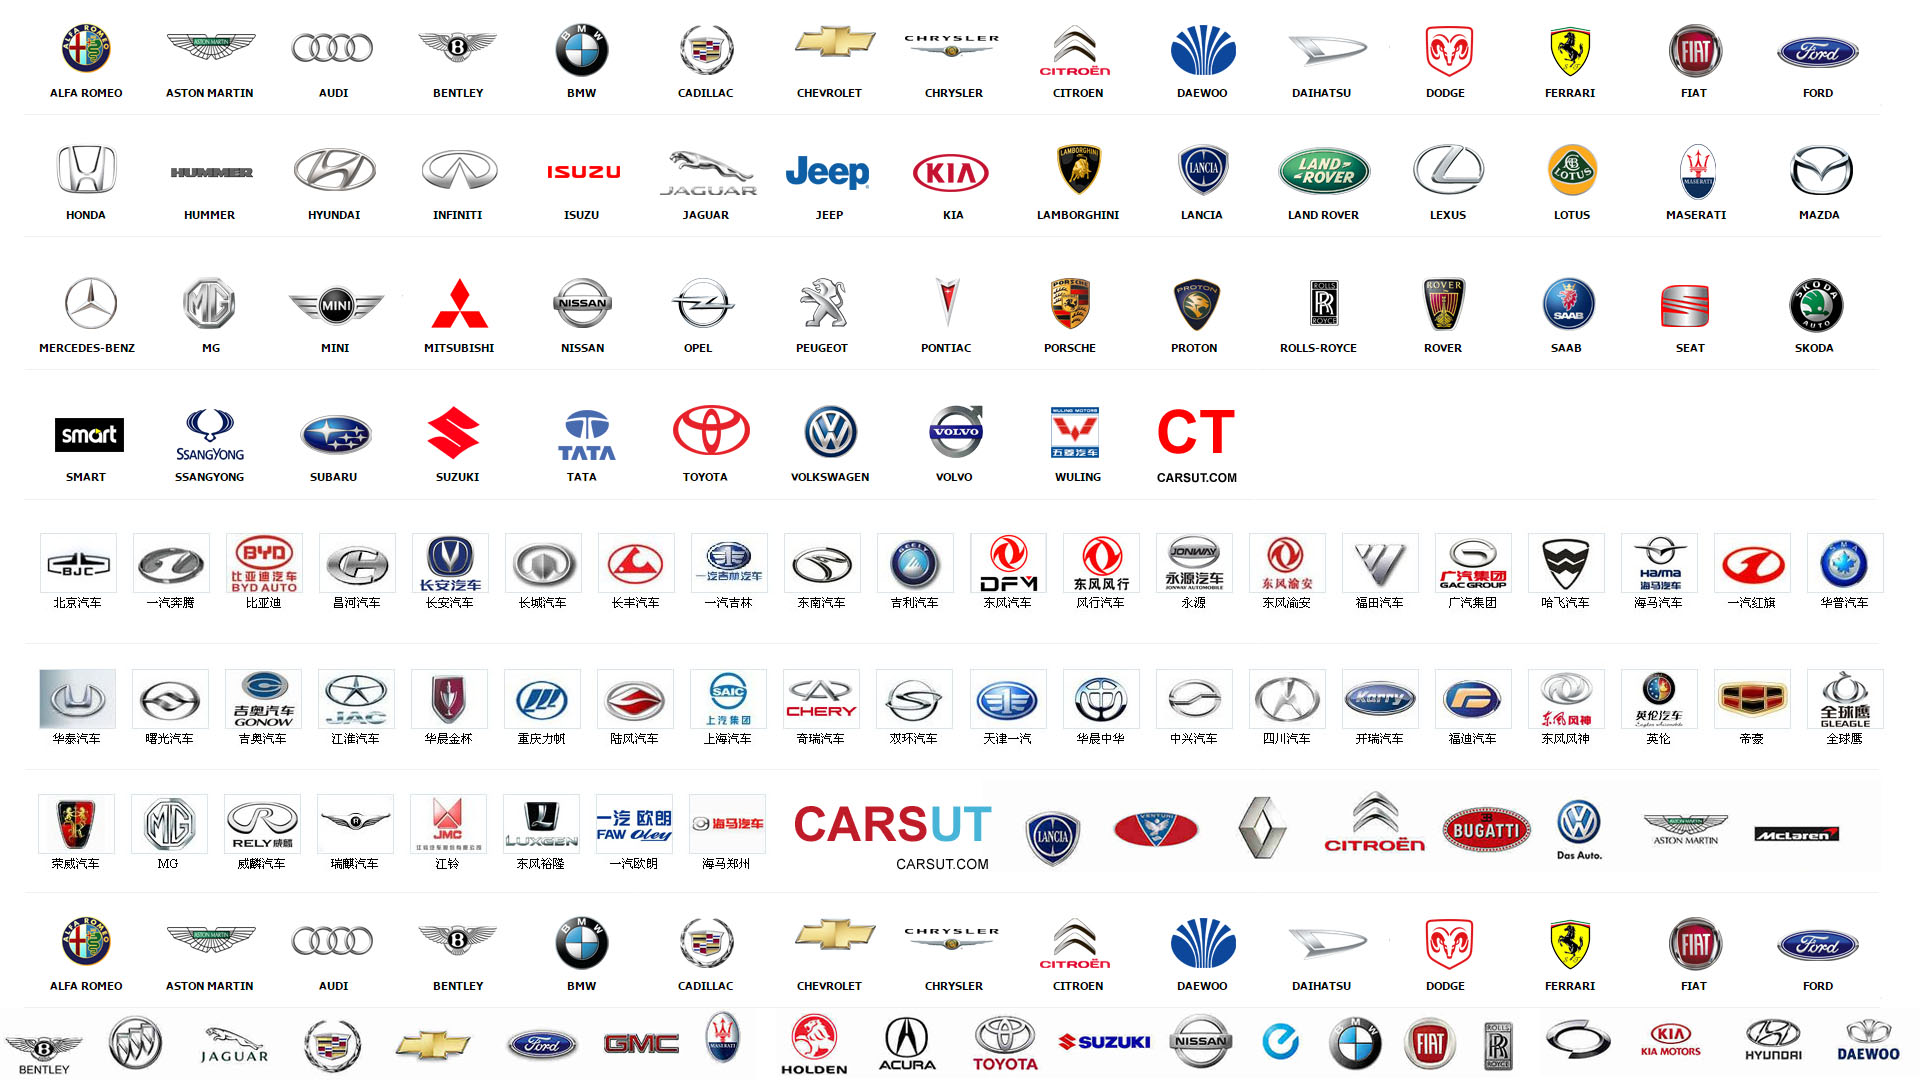 Free Download Car Company Logos Carsut Understand Cars And Drive